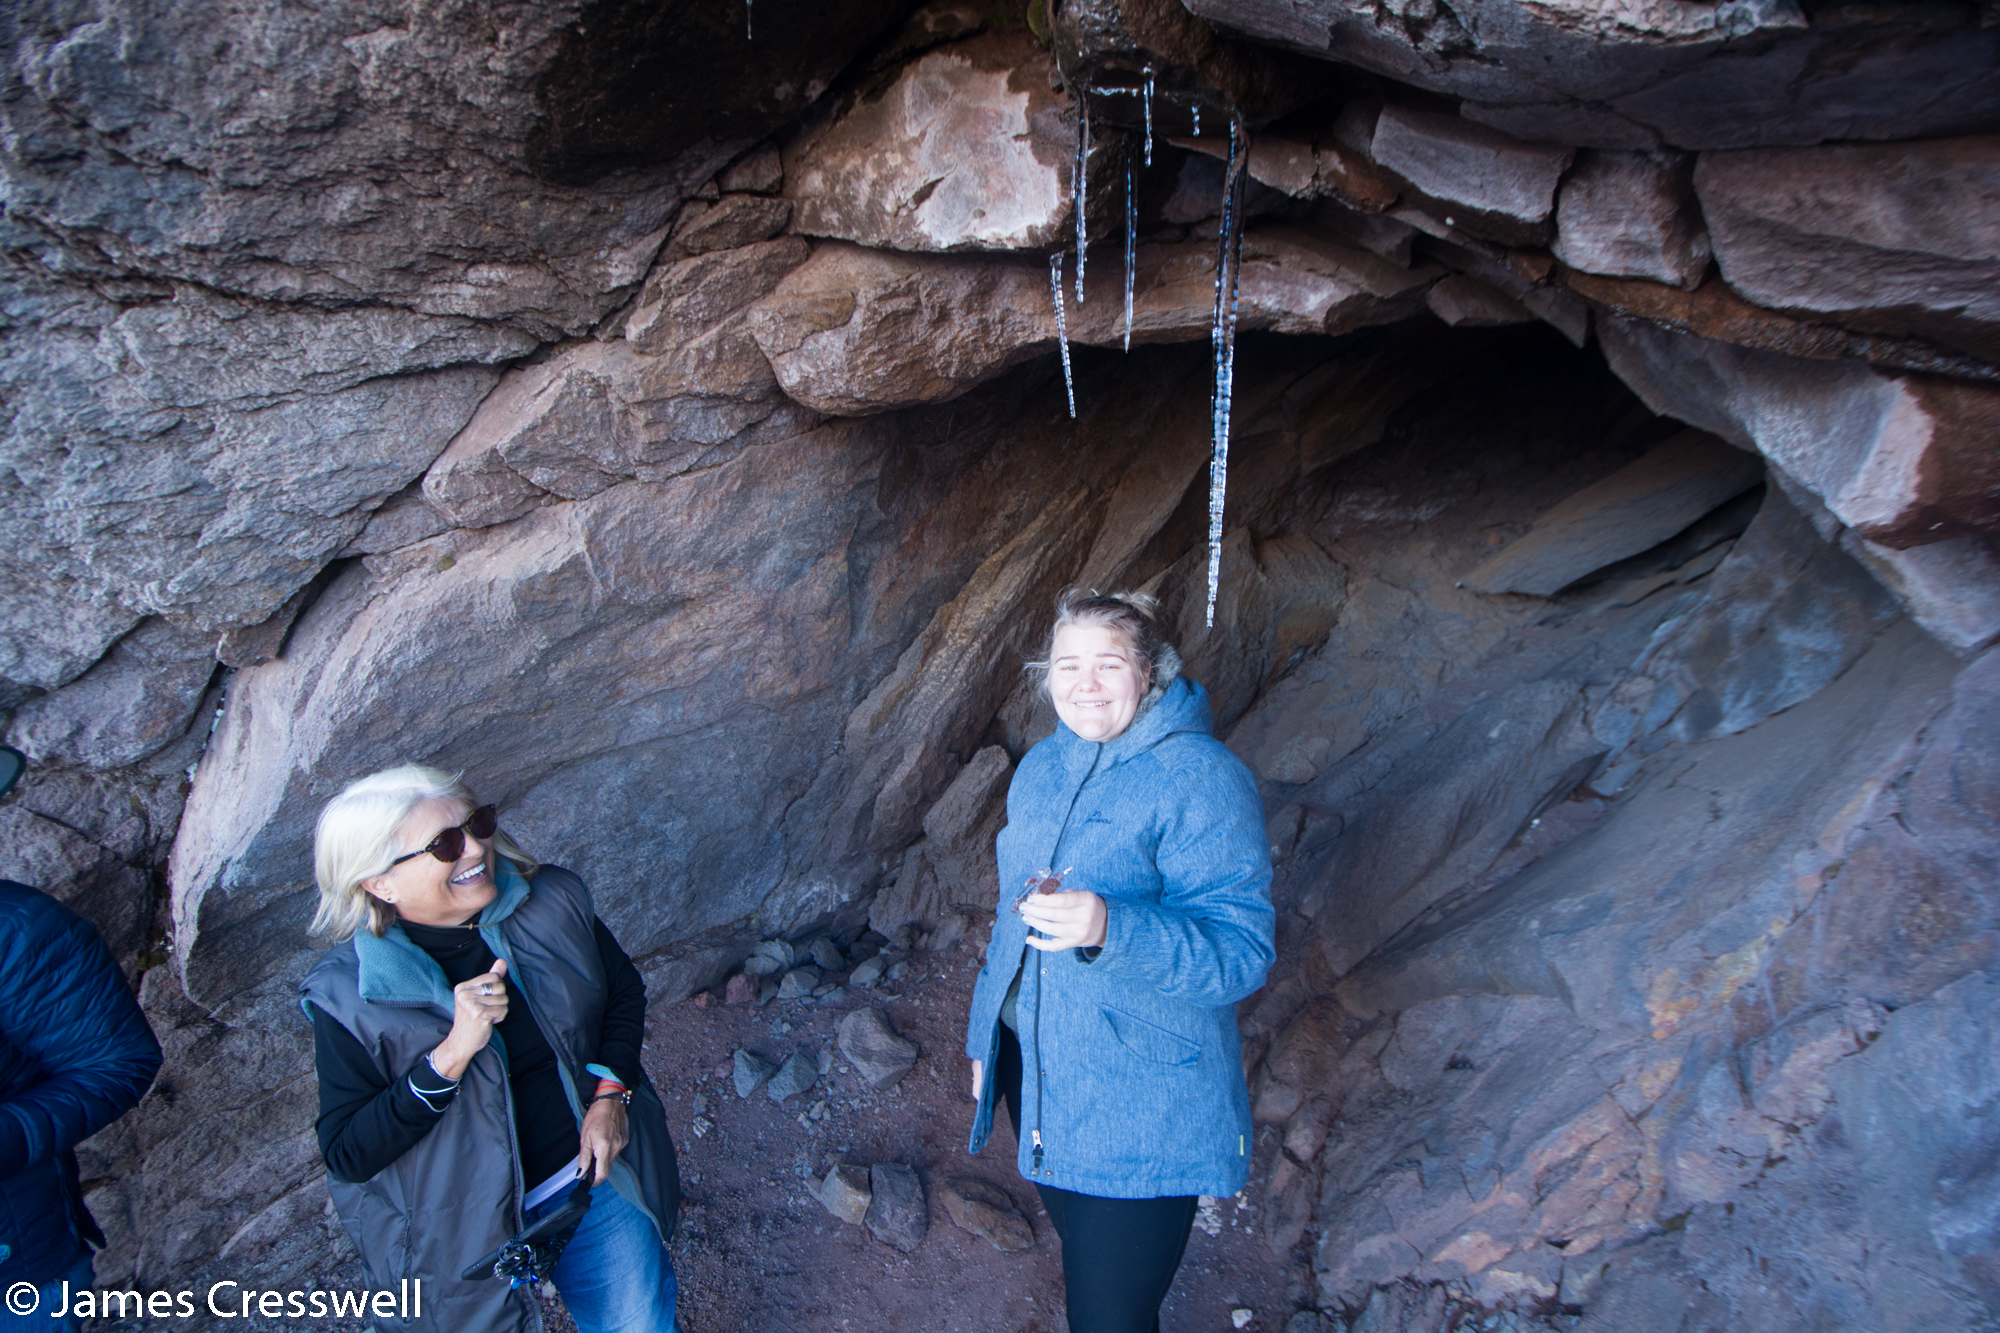 Women in a cave with icicles hanging down